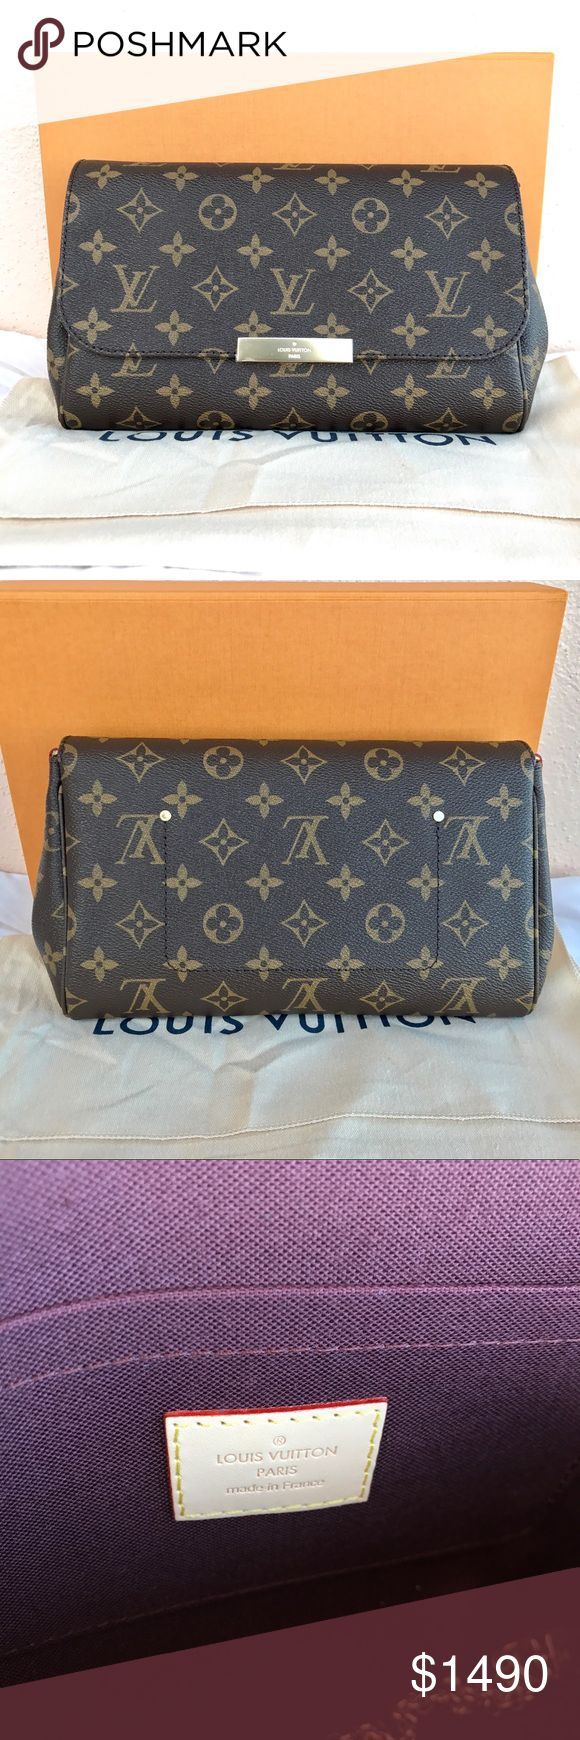 Louis Vuitton Favorite MM Monogram Made in France Authentic BRAND NEW Louis Vuitton Favorite MM in Monogram Never carried Made in France Comes with a box and dustbag. Still have a plastic on the plate (both sides). 11.0 x 6.7 x 1.6 inches  (LxHxW)  - Ingenious magnetic closure - Golden color metallic pieces - Natural cowhide leather trim - Interior flat pocket Date code:MI2107 Selling higher than the retail price bec. it is sold out in stores and online.I am accepting reasonable offers. The…